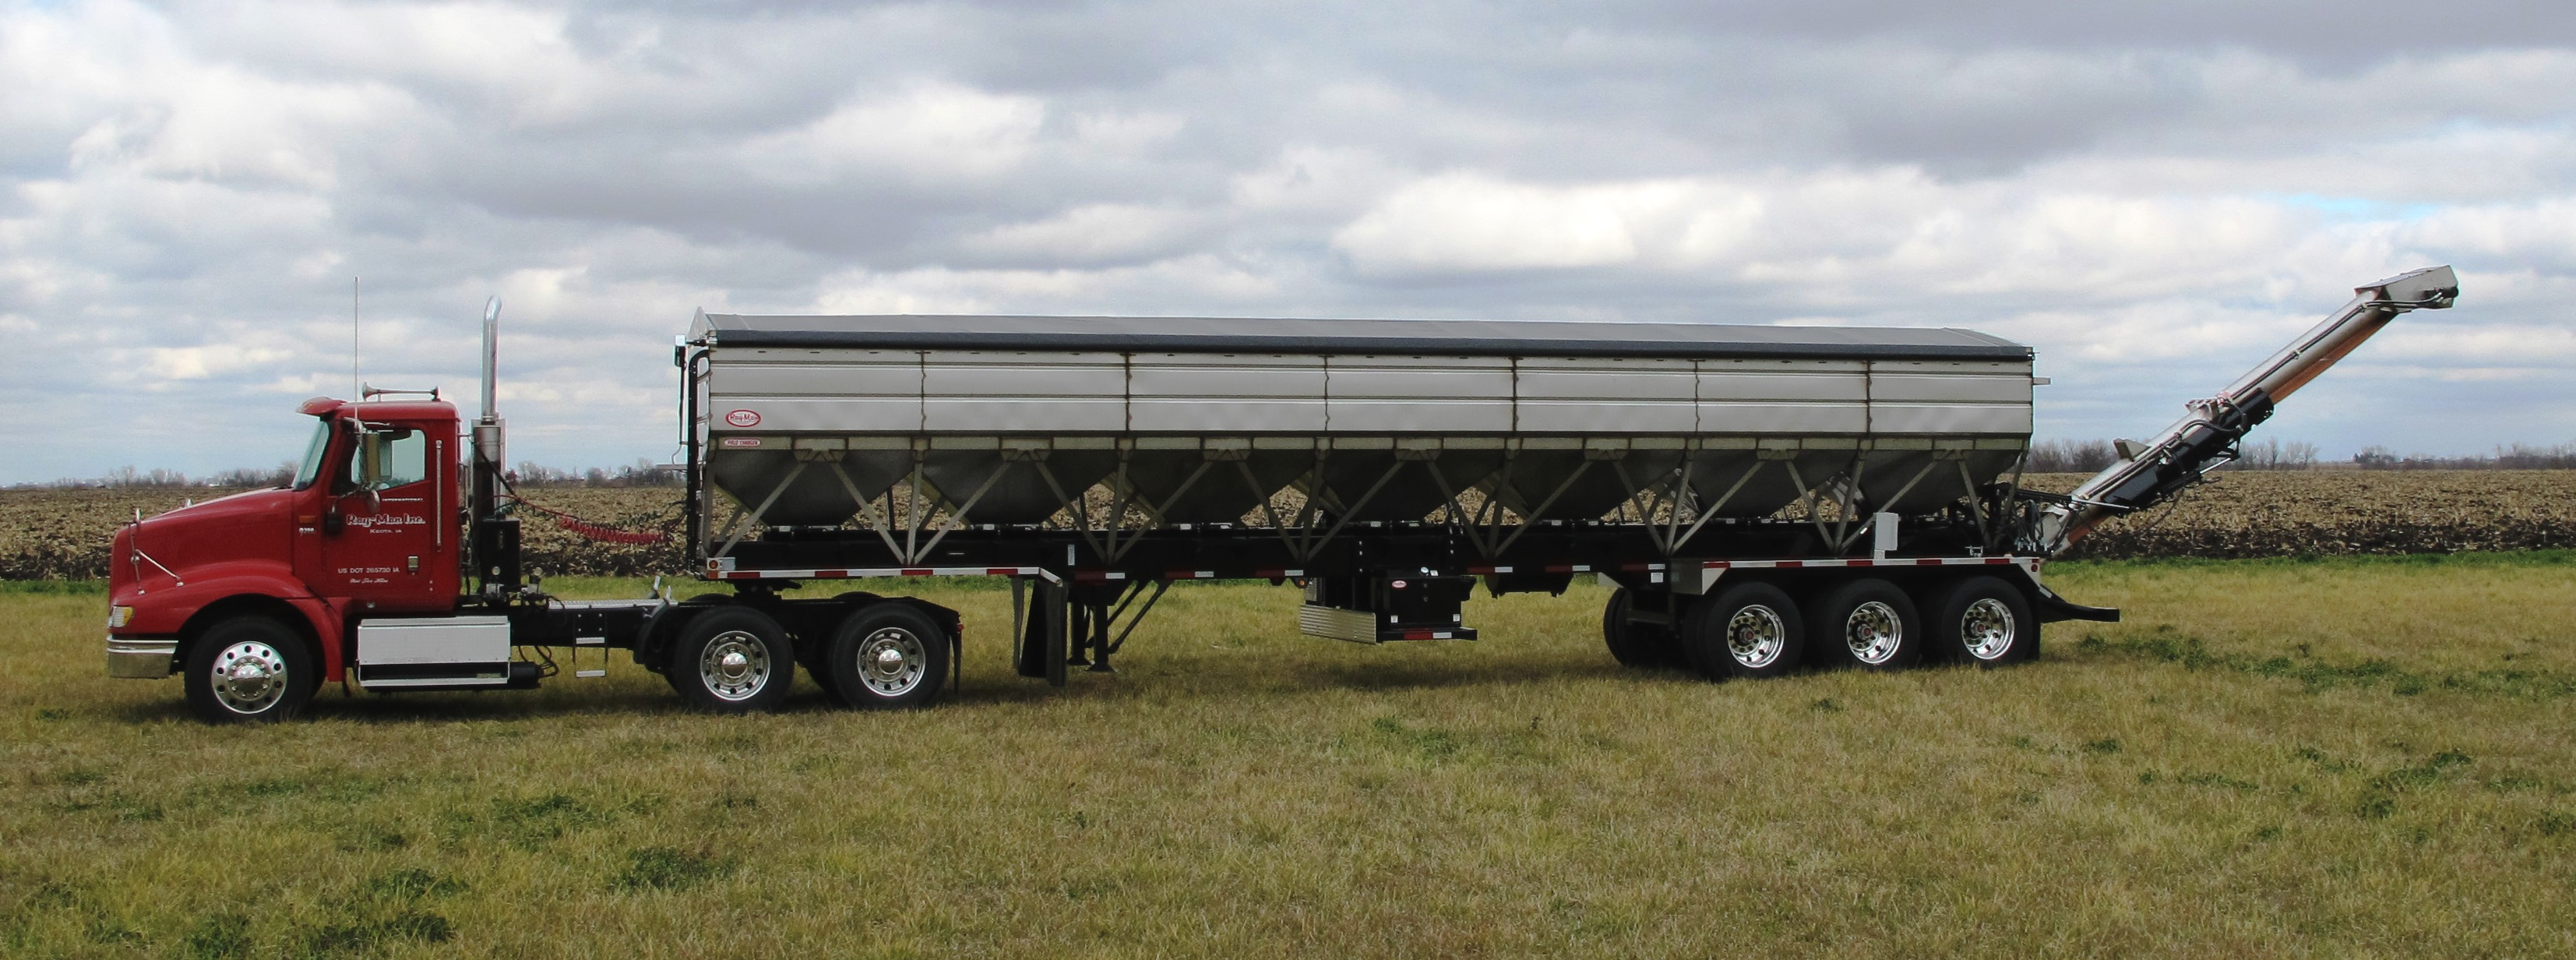 Ray-Man Charger II-CB Semi-Trailer